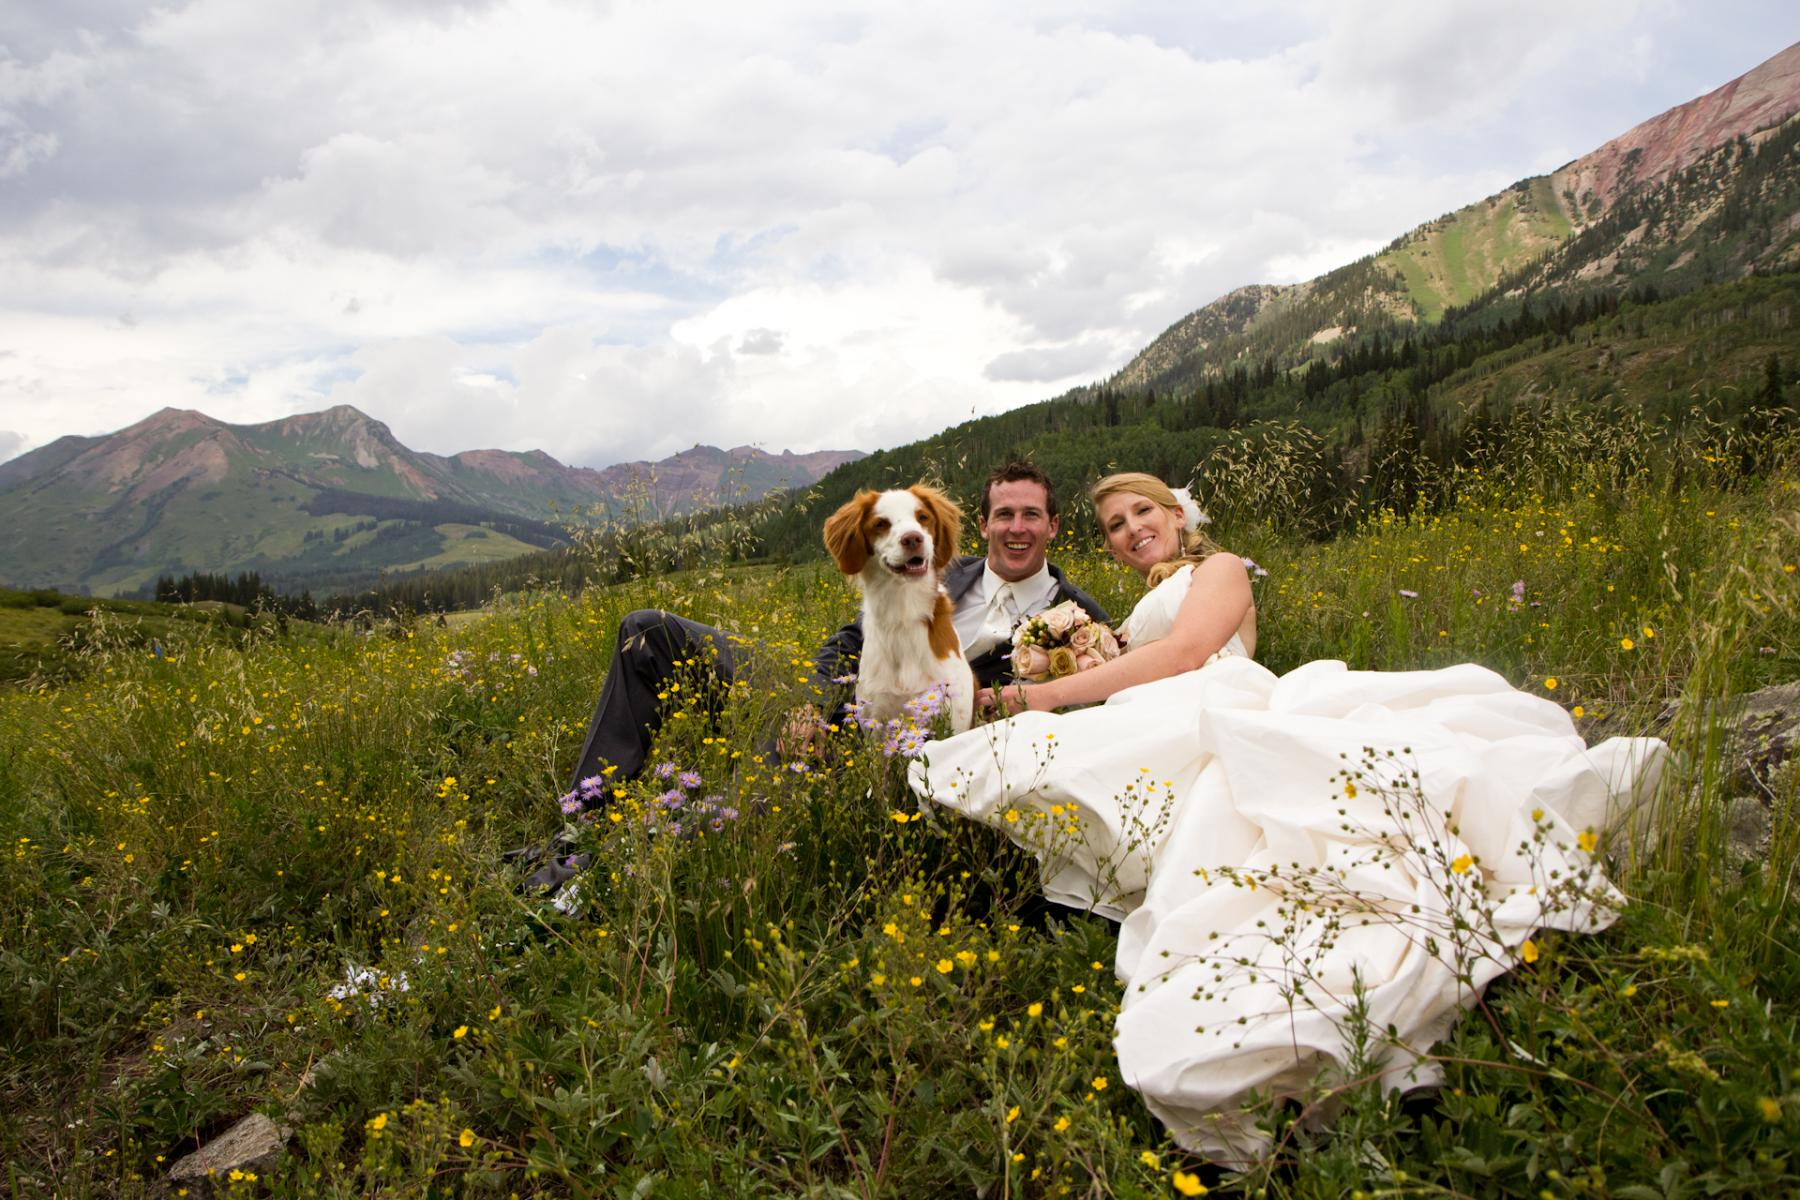 Mountain Wedding Portrait by Boulder Wedding Photographer D'Antonio Photography